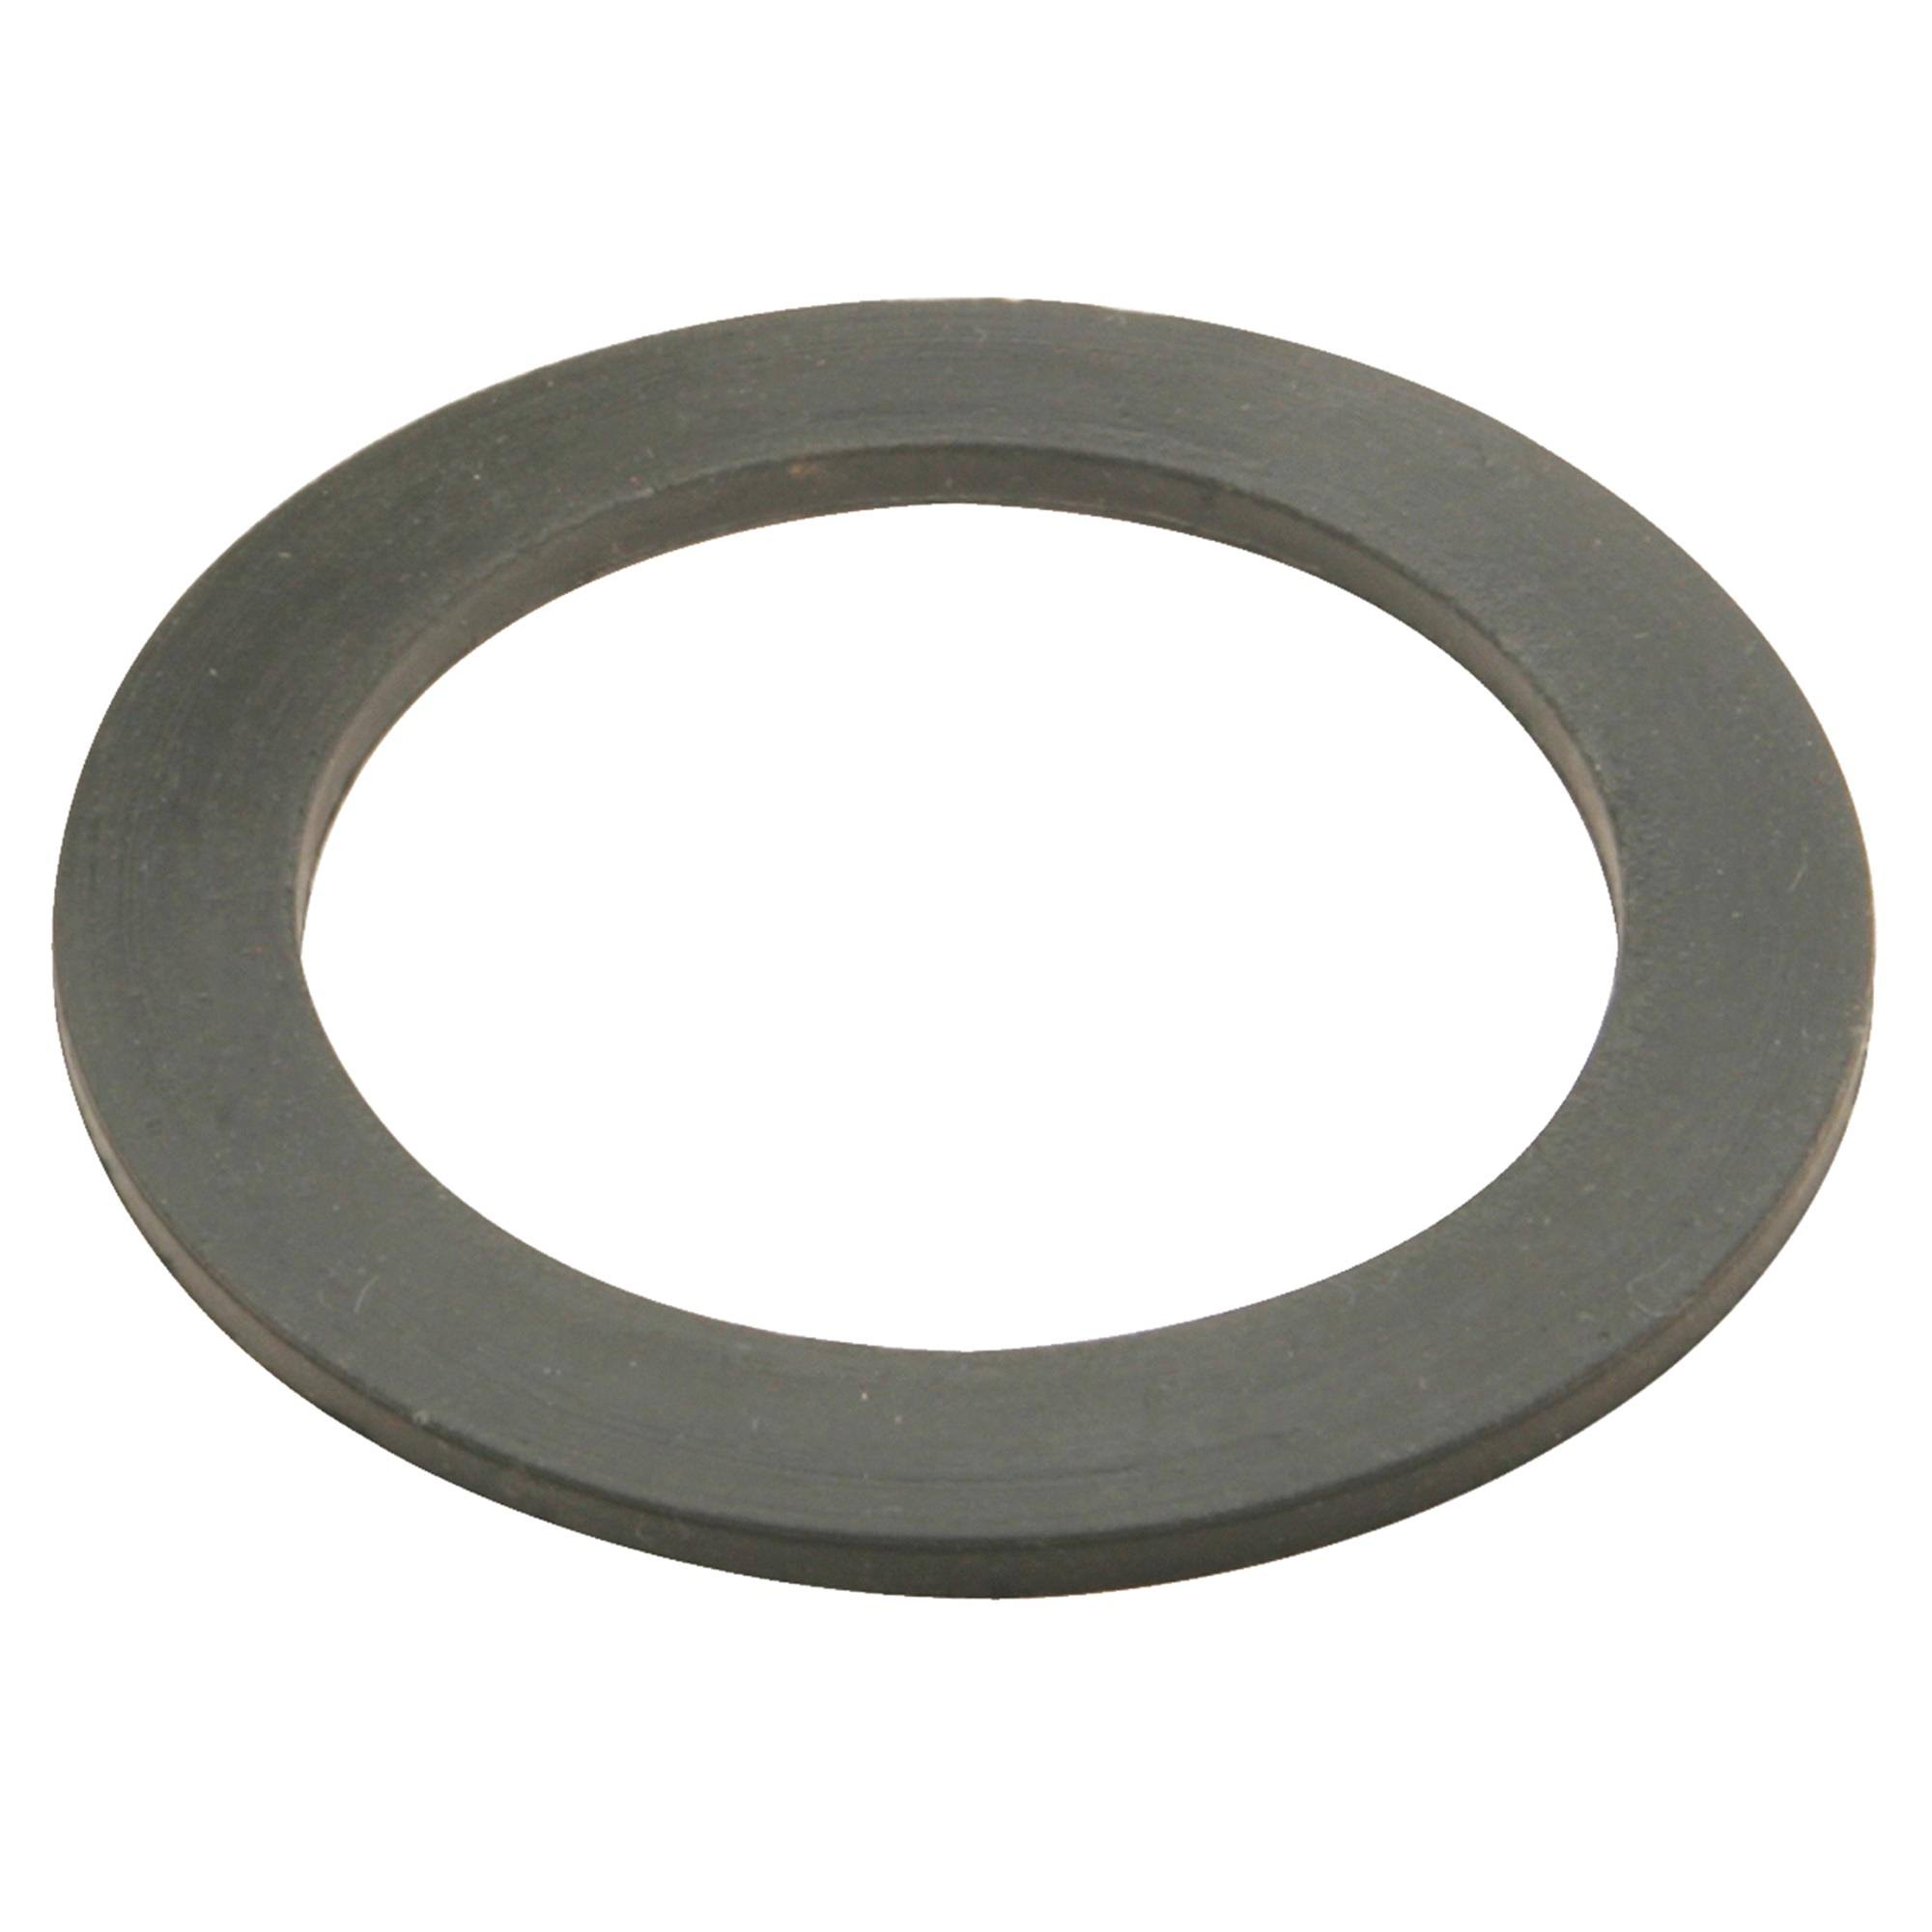 Plumb Pak Keeney Mfg 443915 Rubber Tailpiece Washer